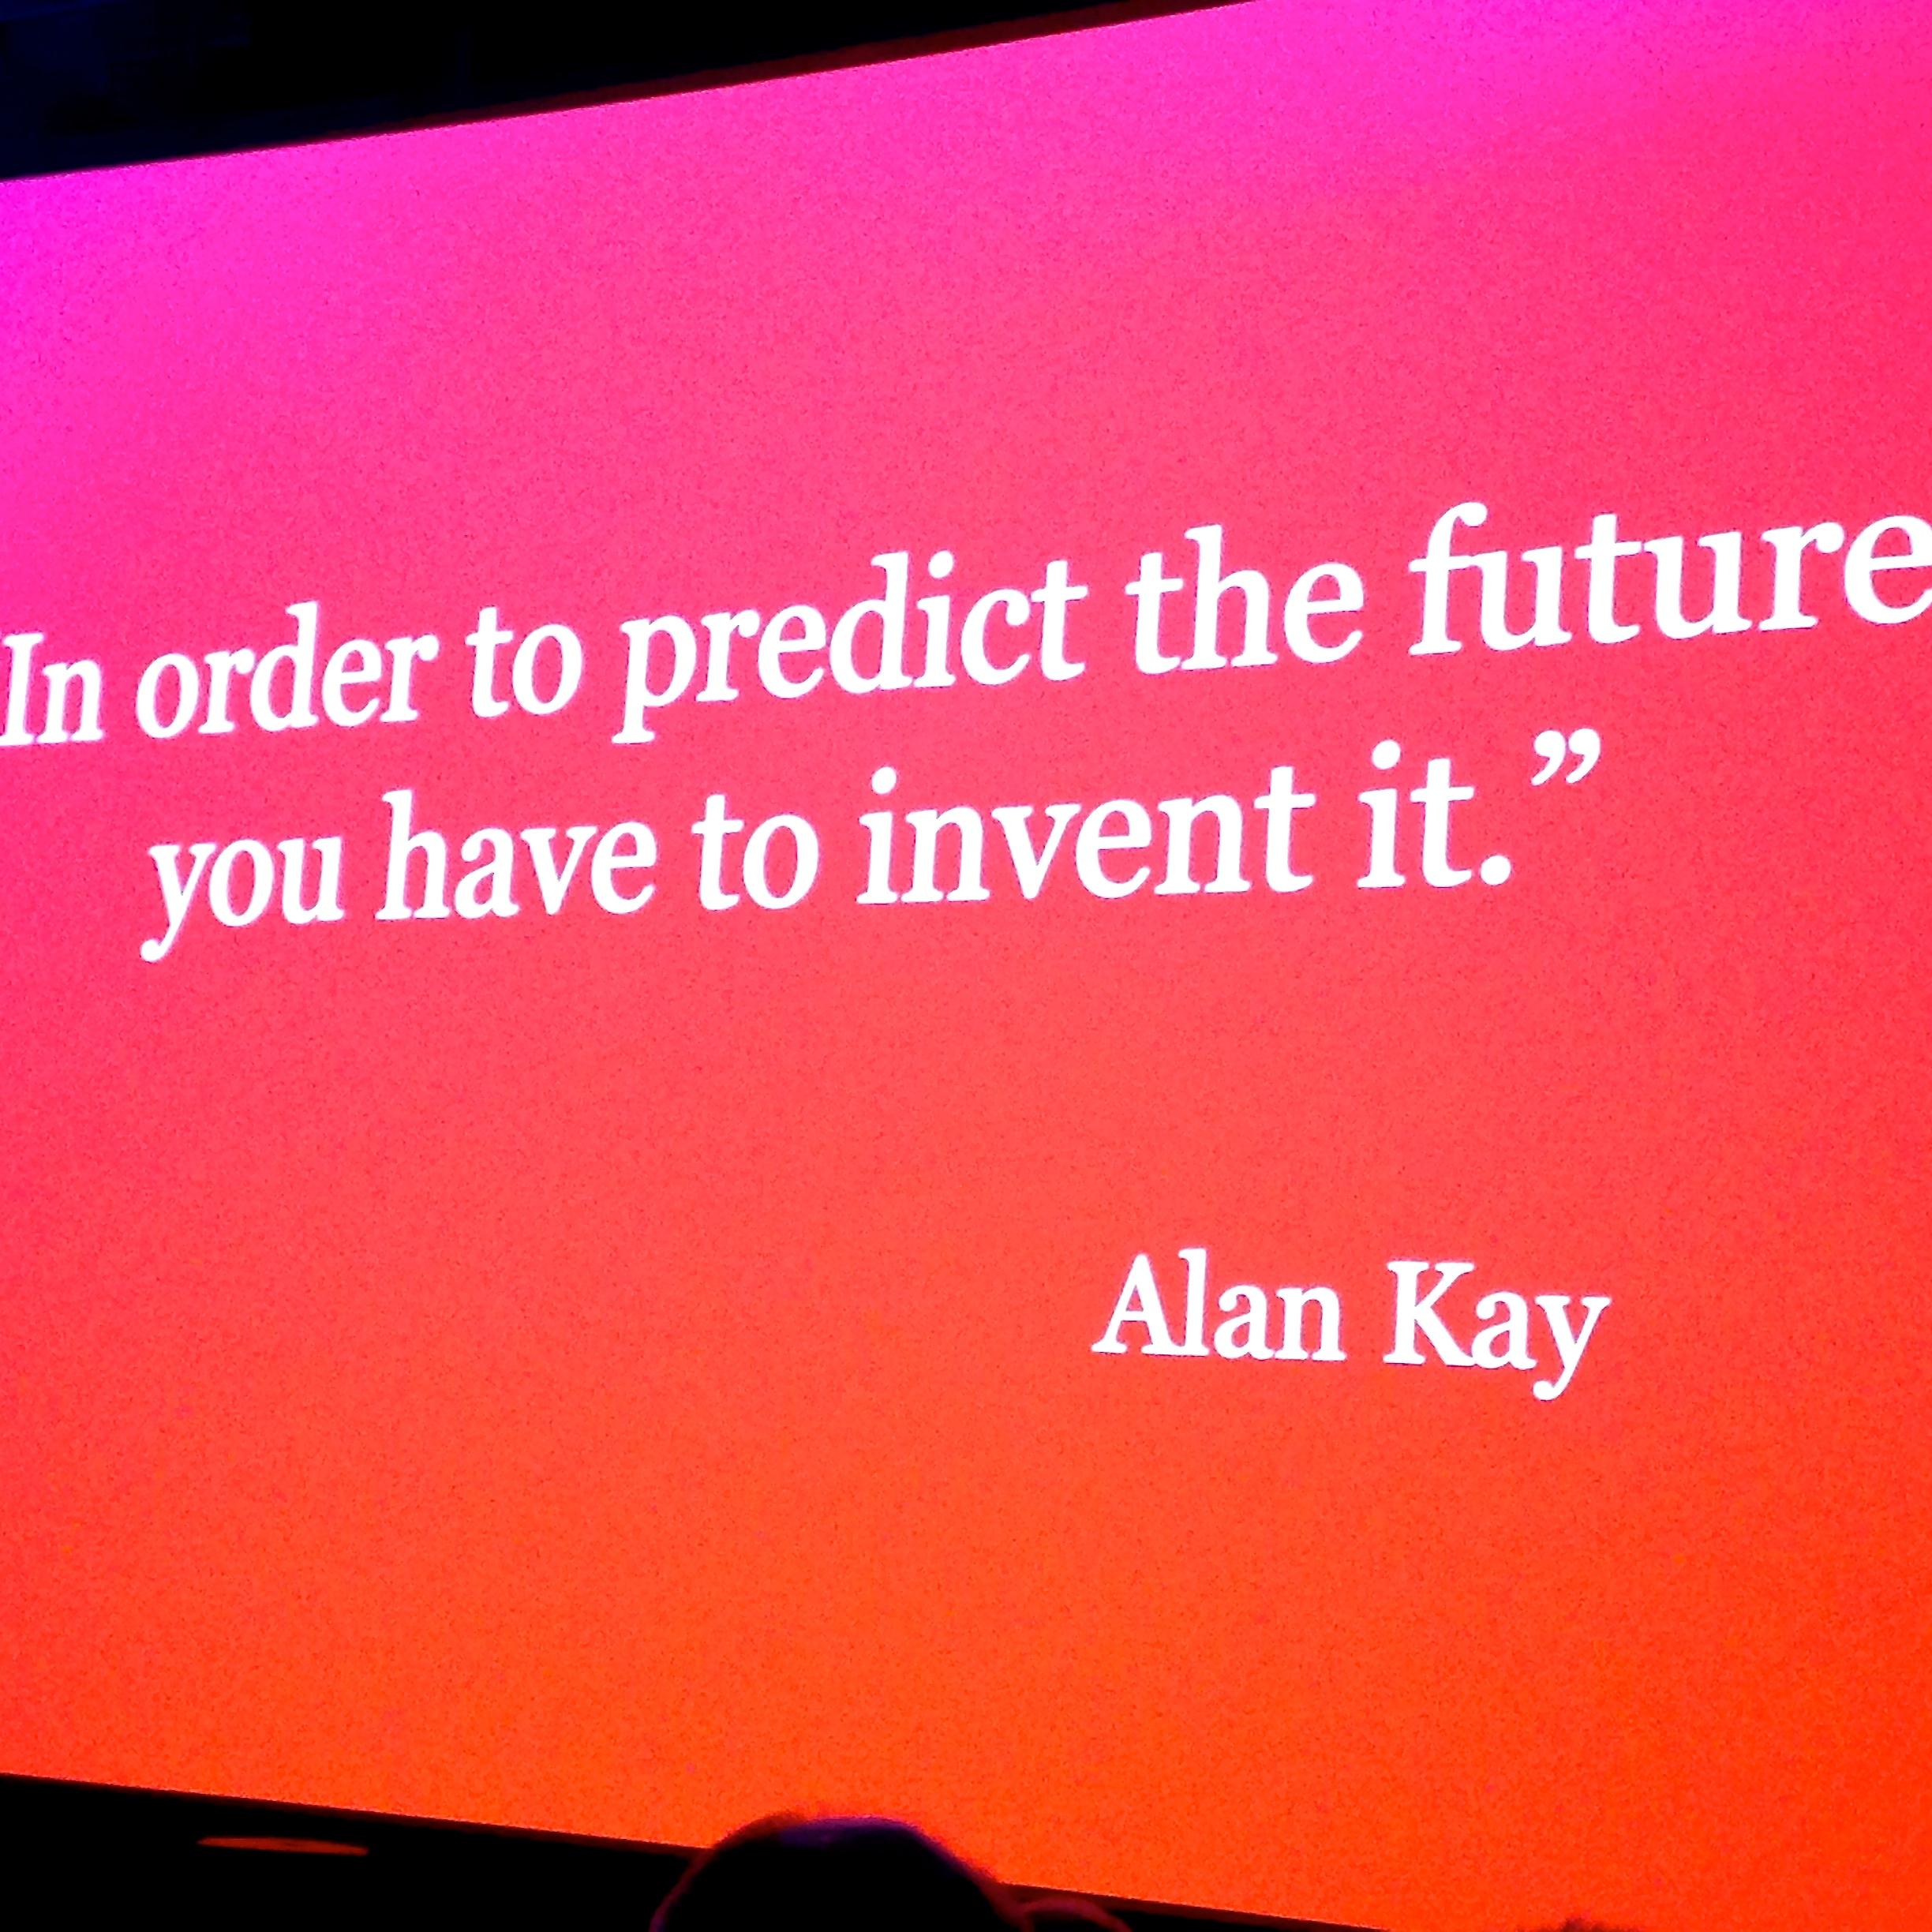 Nice quote - we need to grow and expand our horizons of what is possible